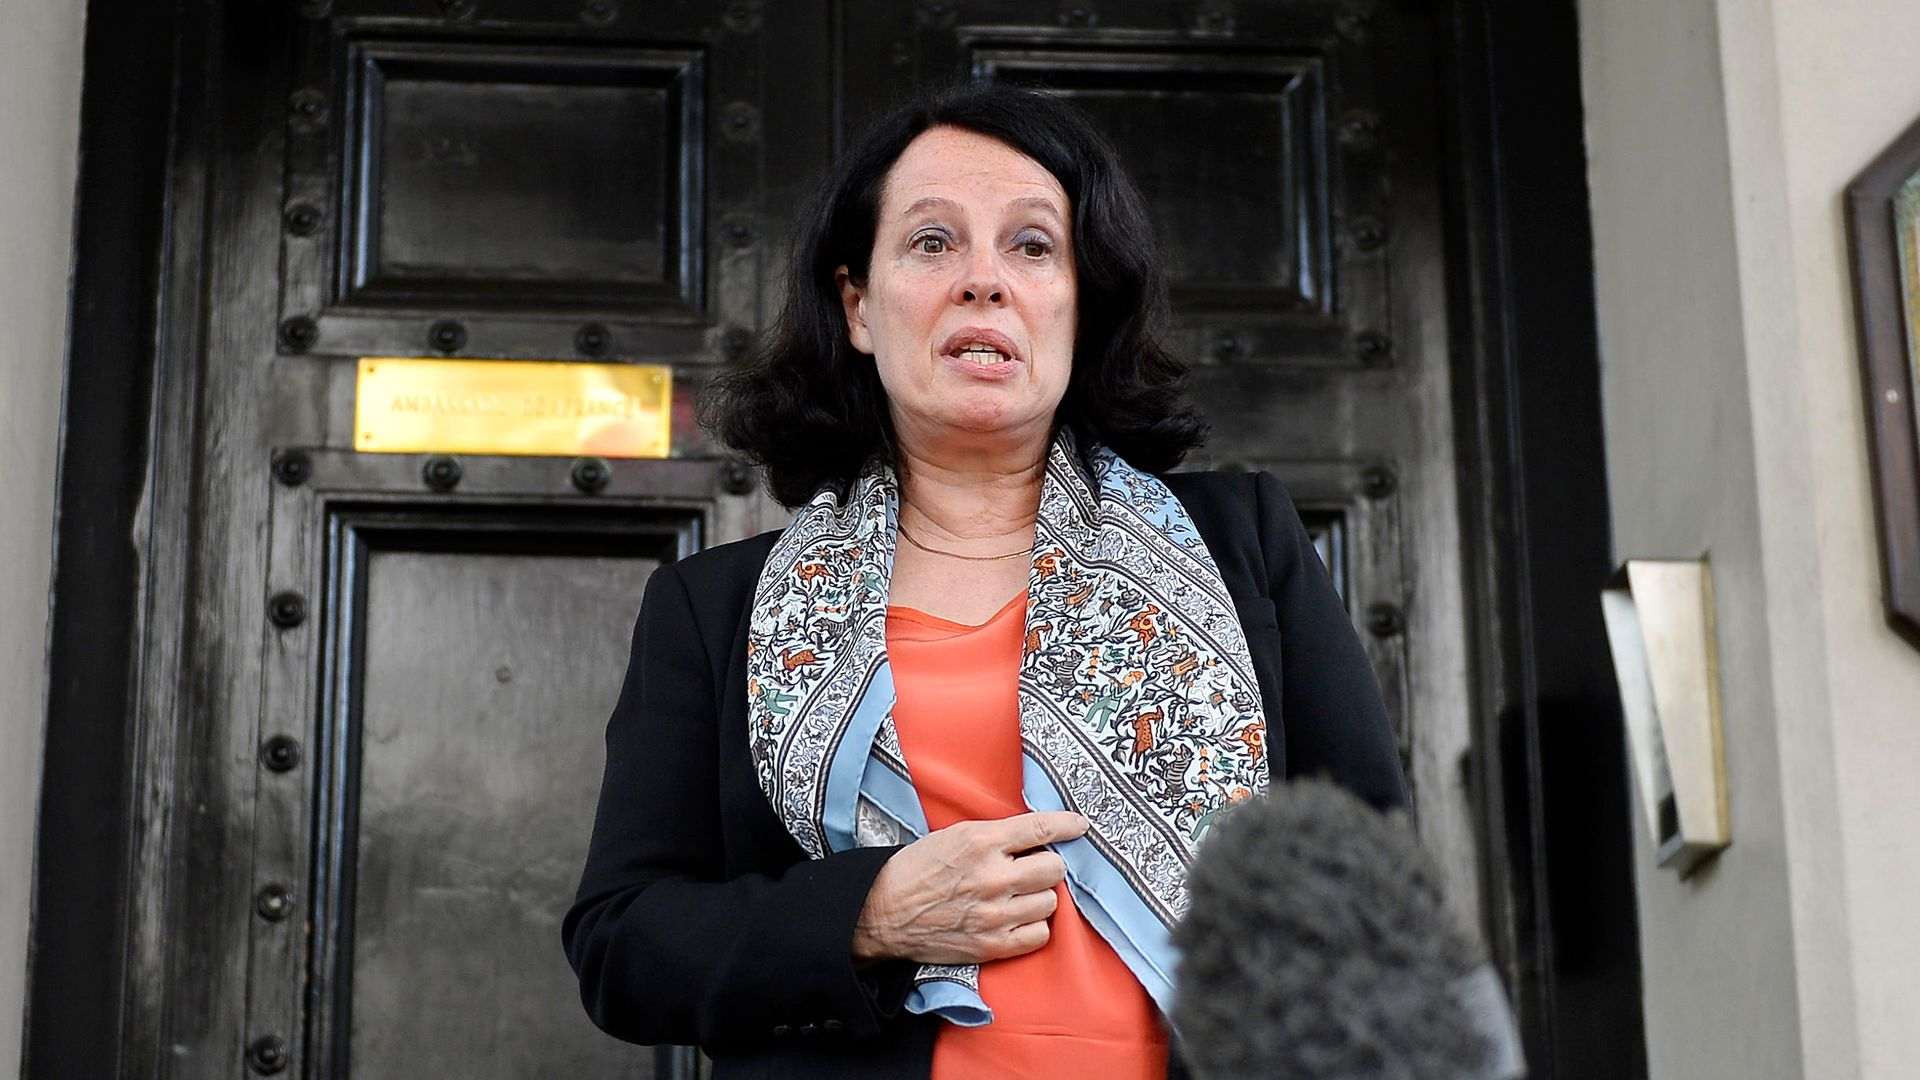 Sylvie Bermann, France's former ambassador to the UK, speaks to the media outside the French Embassy in London - Credit: PA